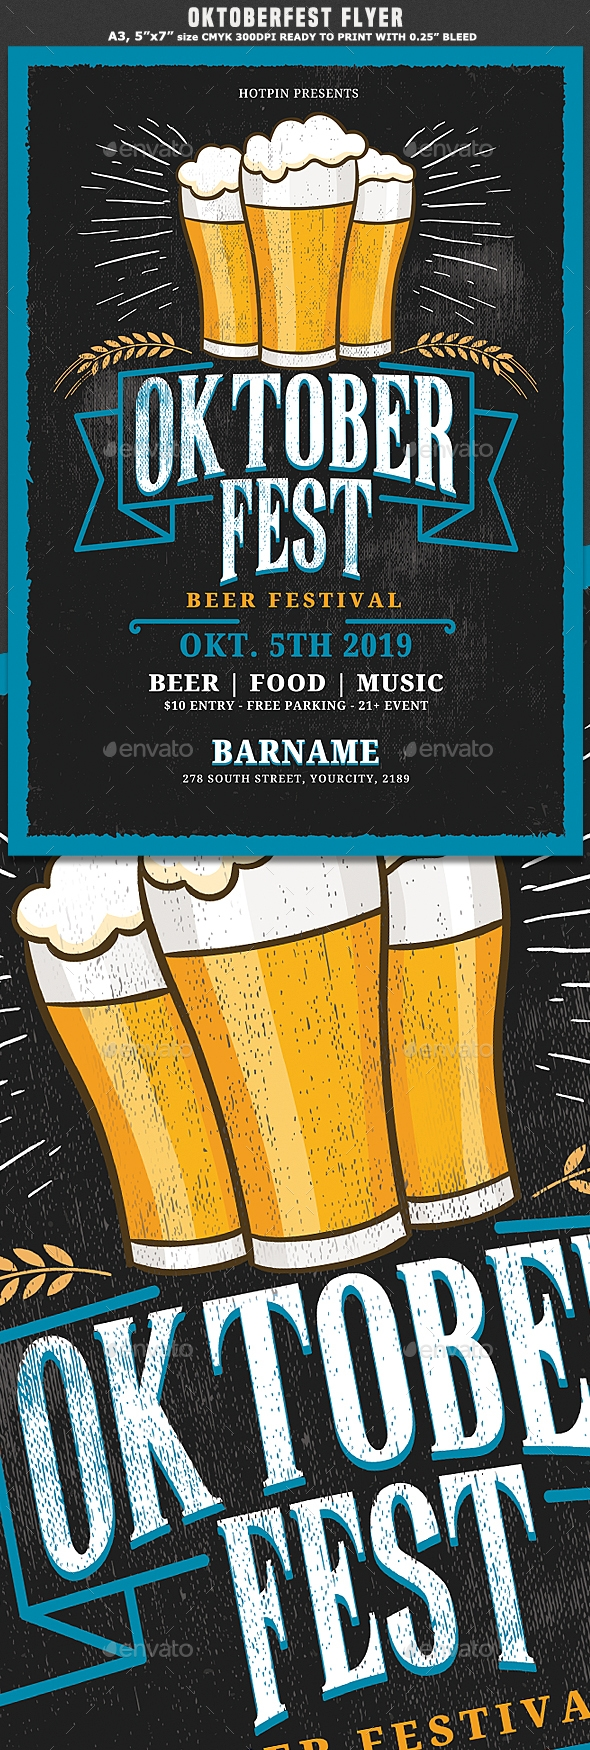 Flyers PSD – Brewfest  | Posters Templet – Download